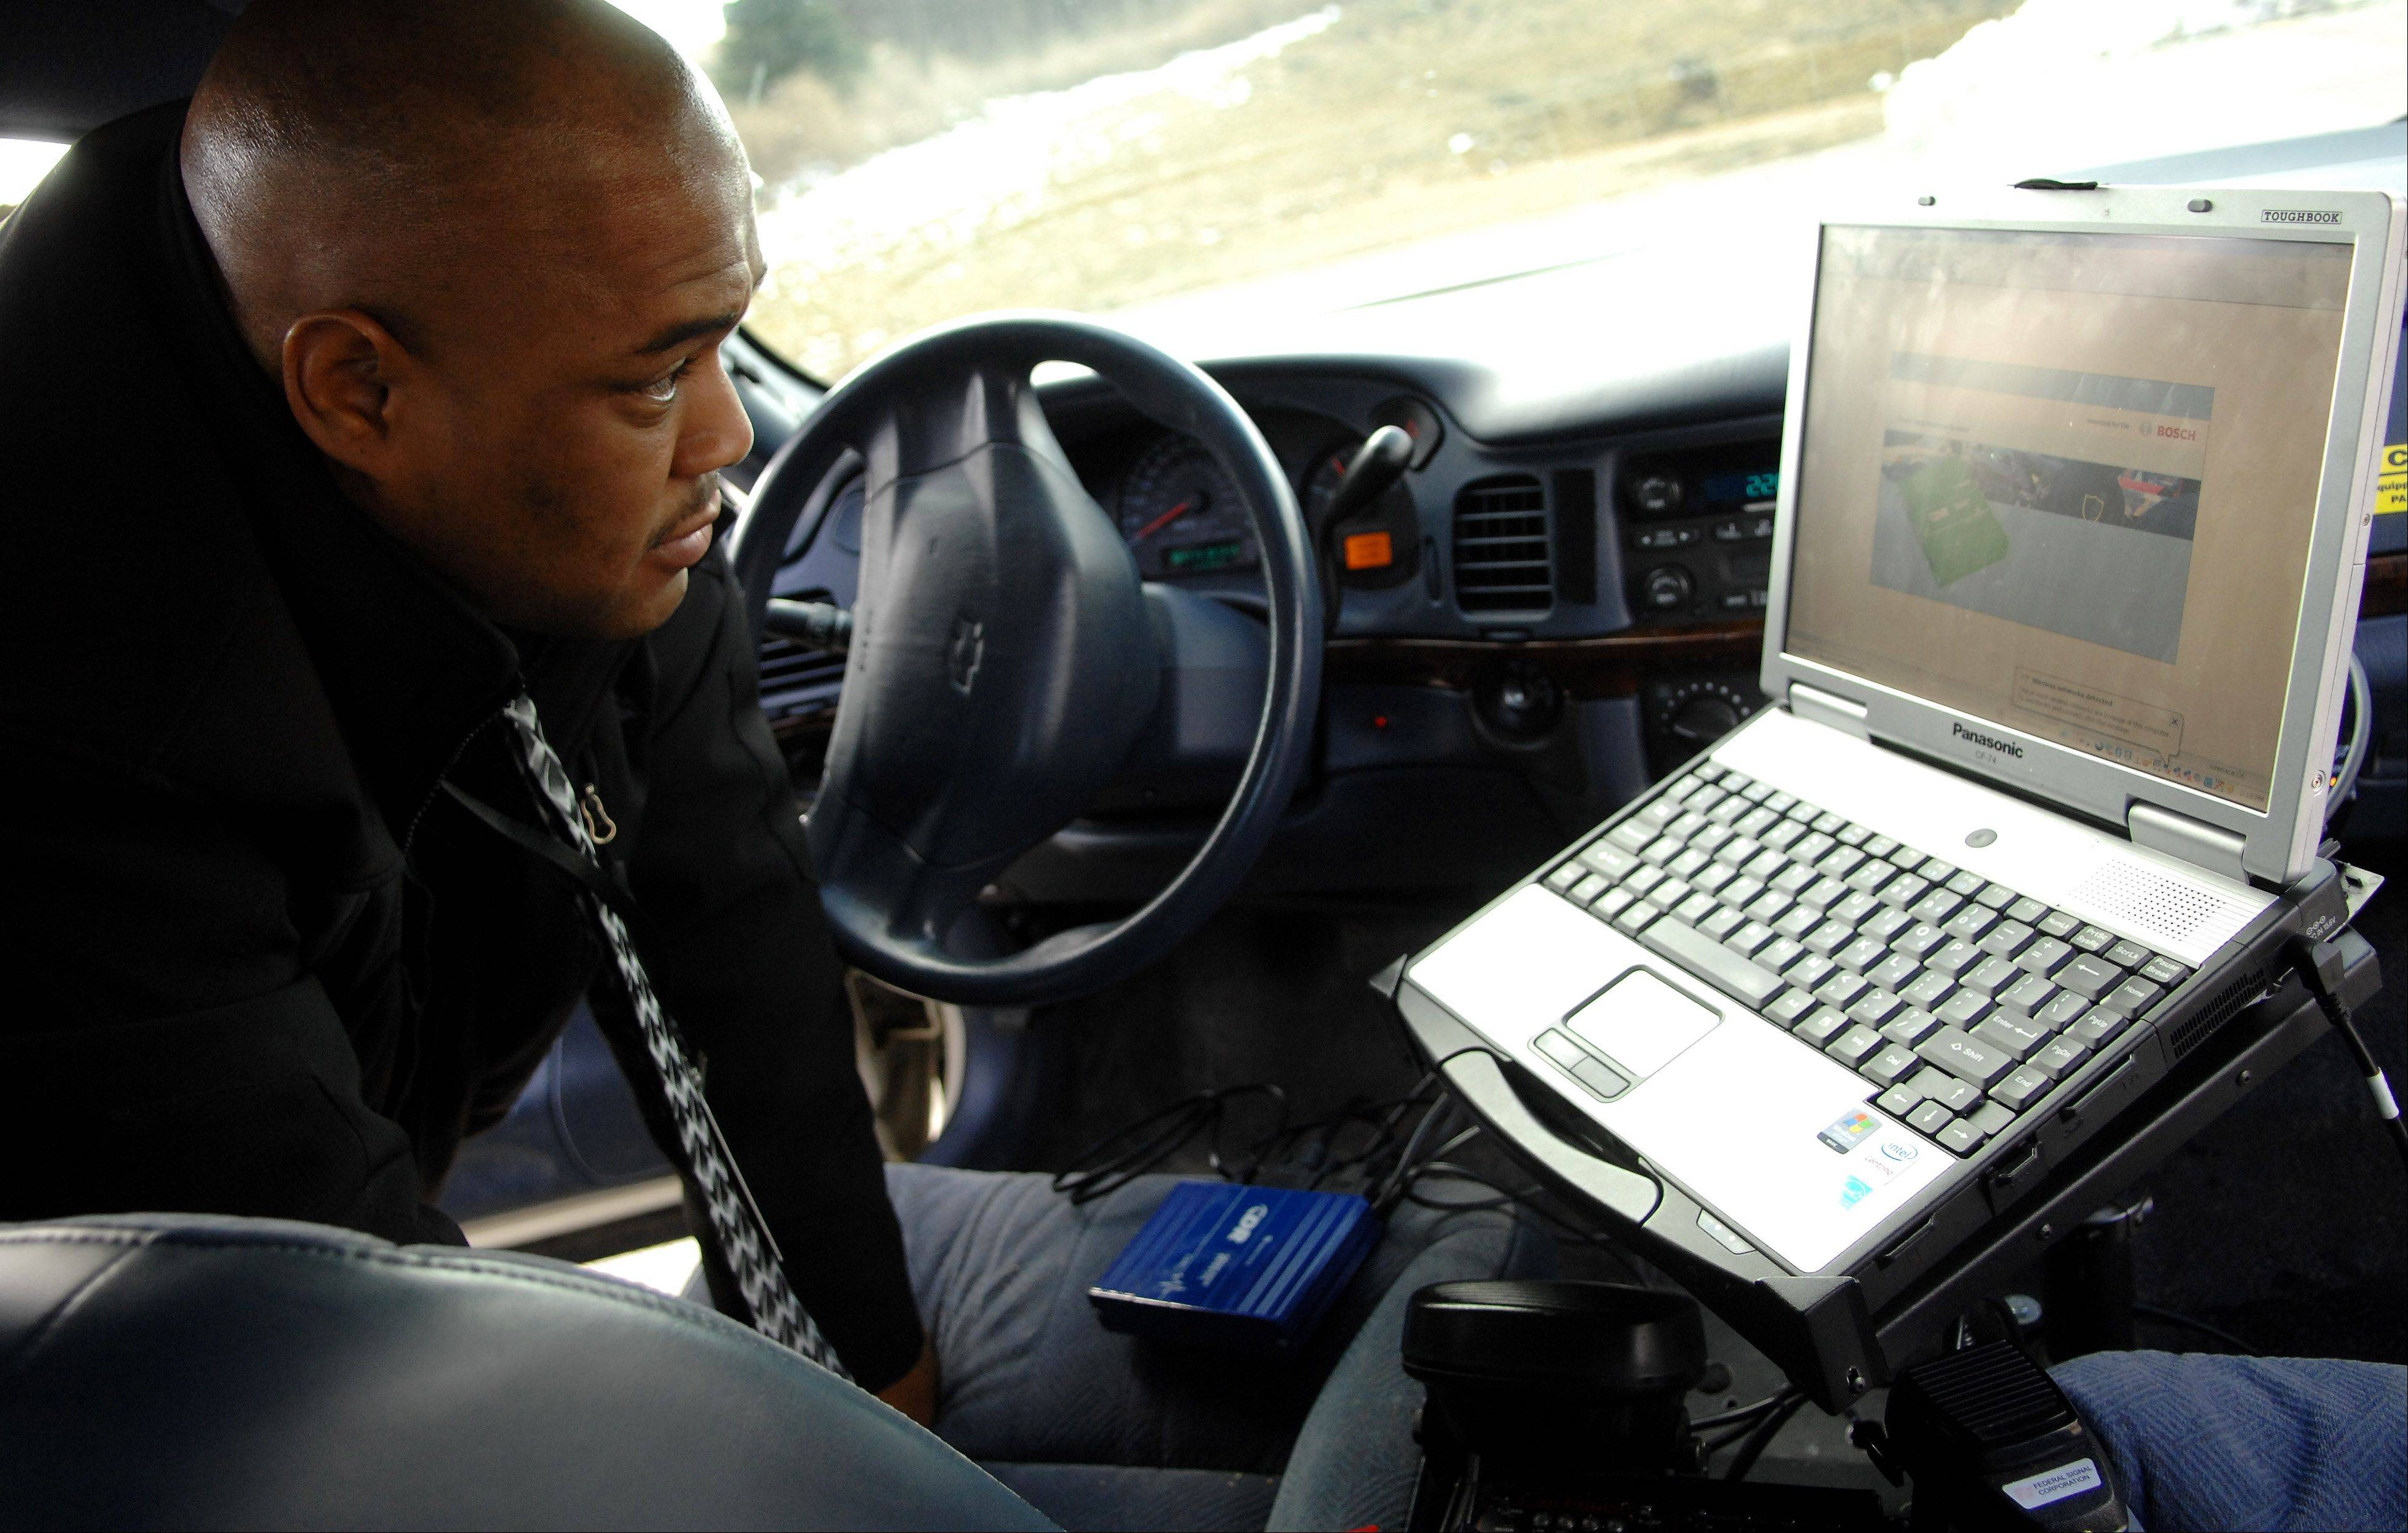 Craig Campbell of the Kane County sheriff's accident reconstruction team demonstrates how he runs a report using a crash data retrieval system that's hooked up to a squad car and a computer.